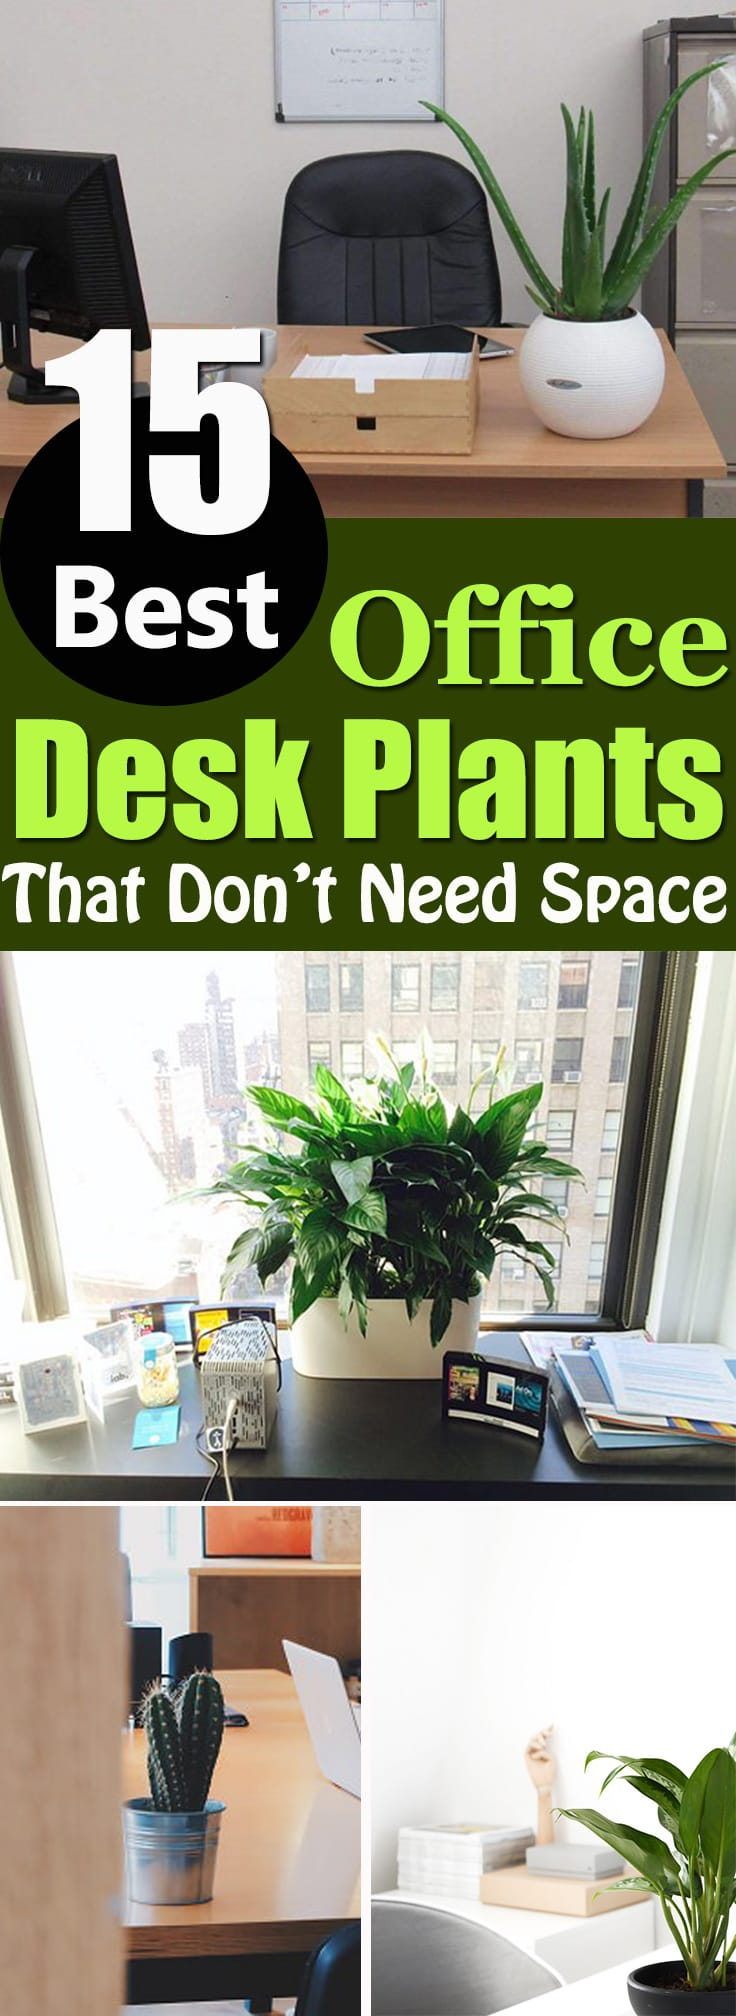 Study Desk For Small Space 15 Best Office Desk Plants That Don't Need Space | Balcony